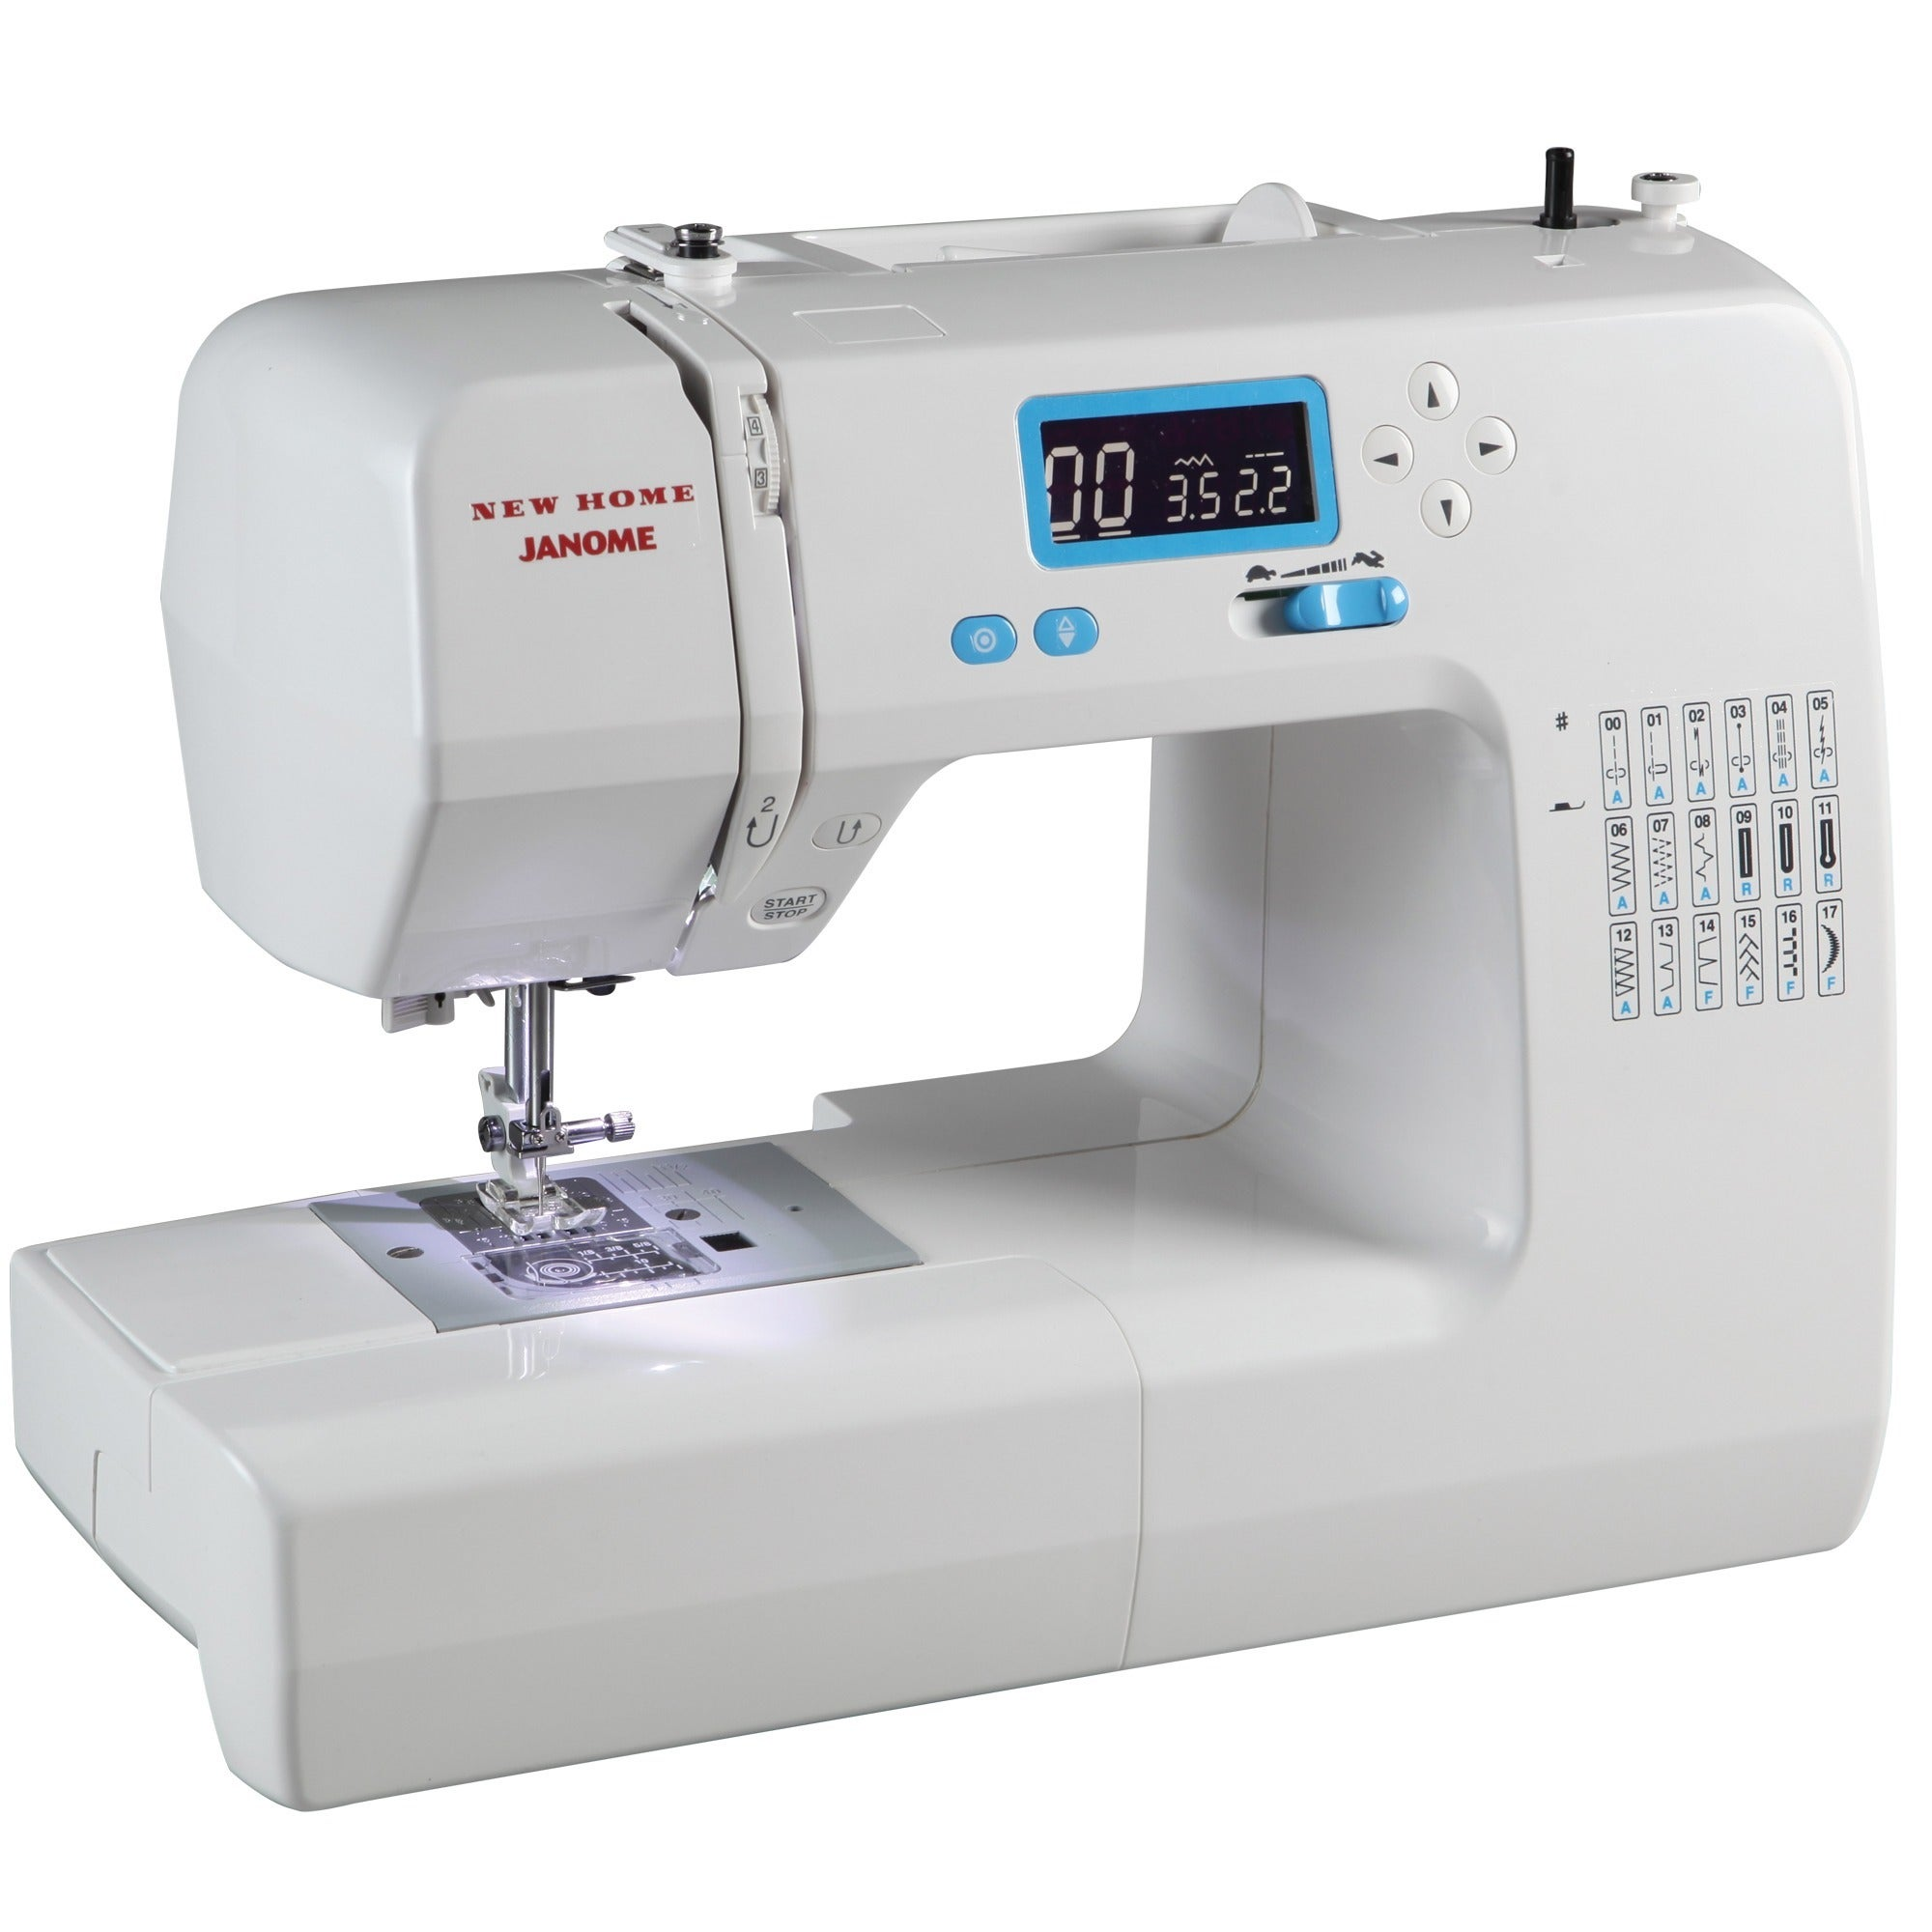 Janome 49018 Computerized Sewing Machine with LCD Screen,...